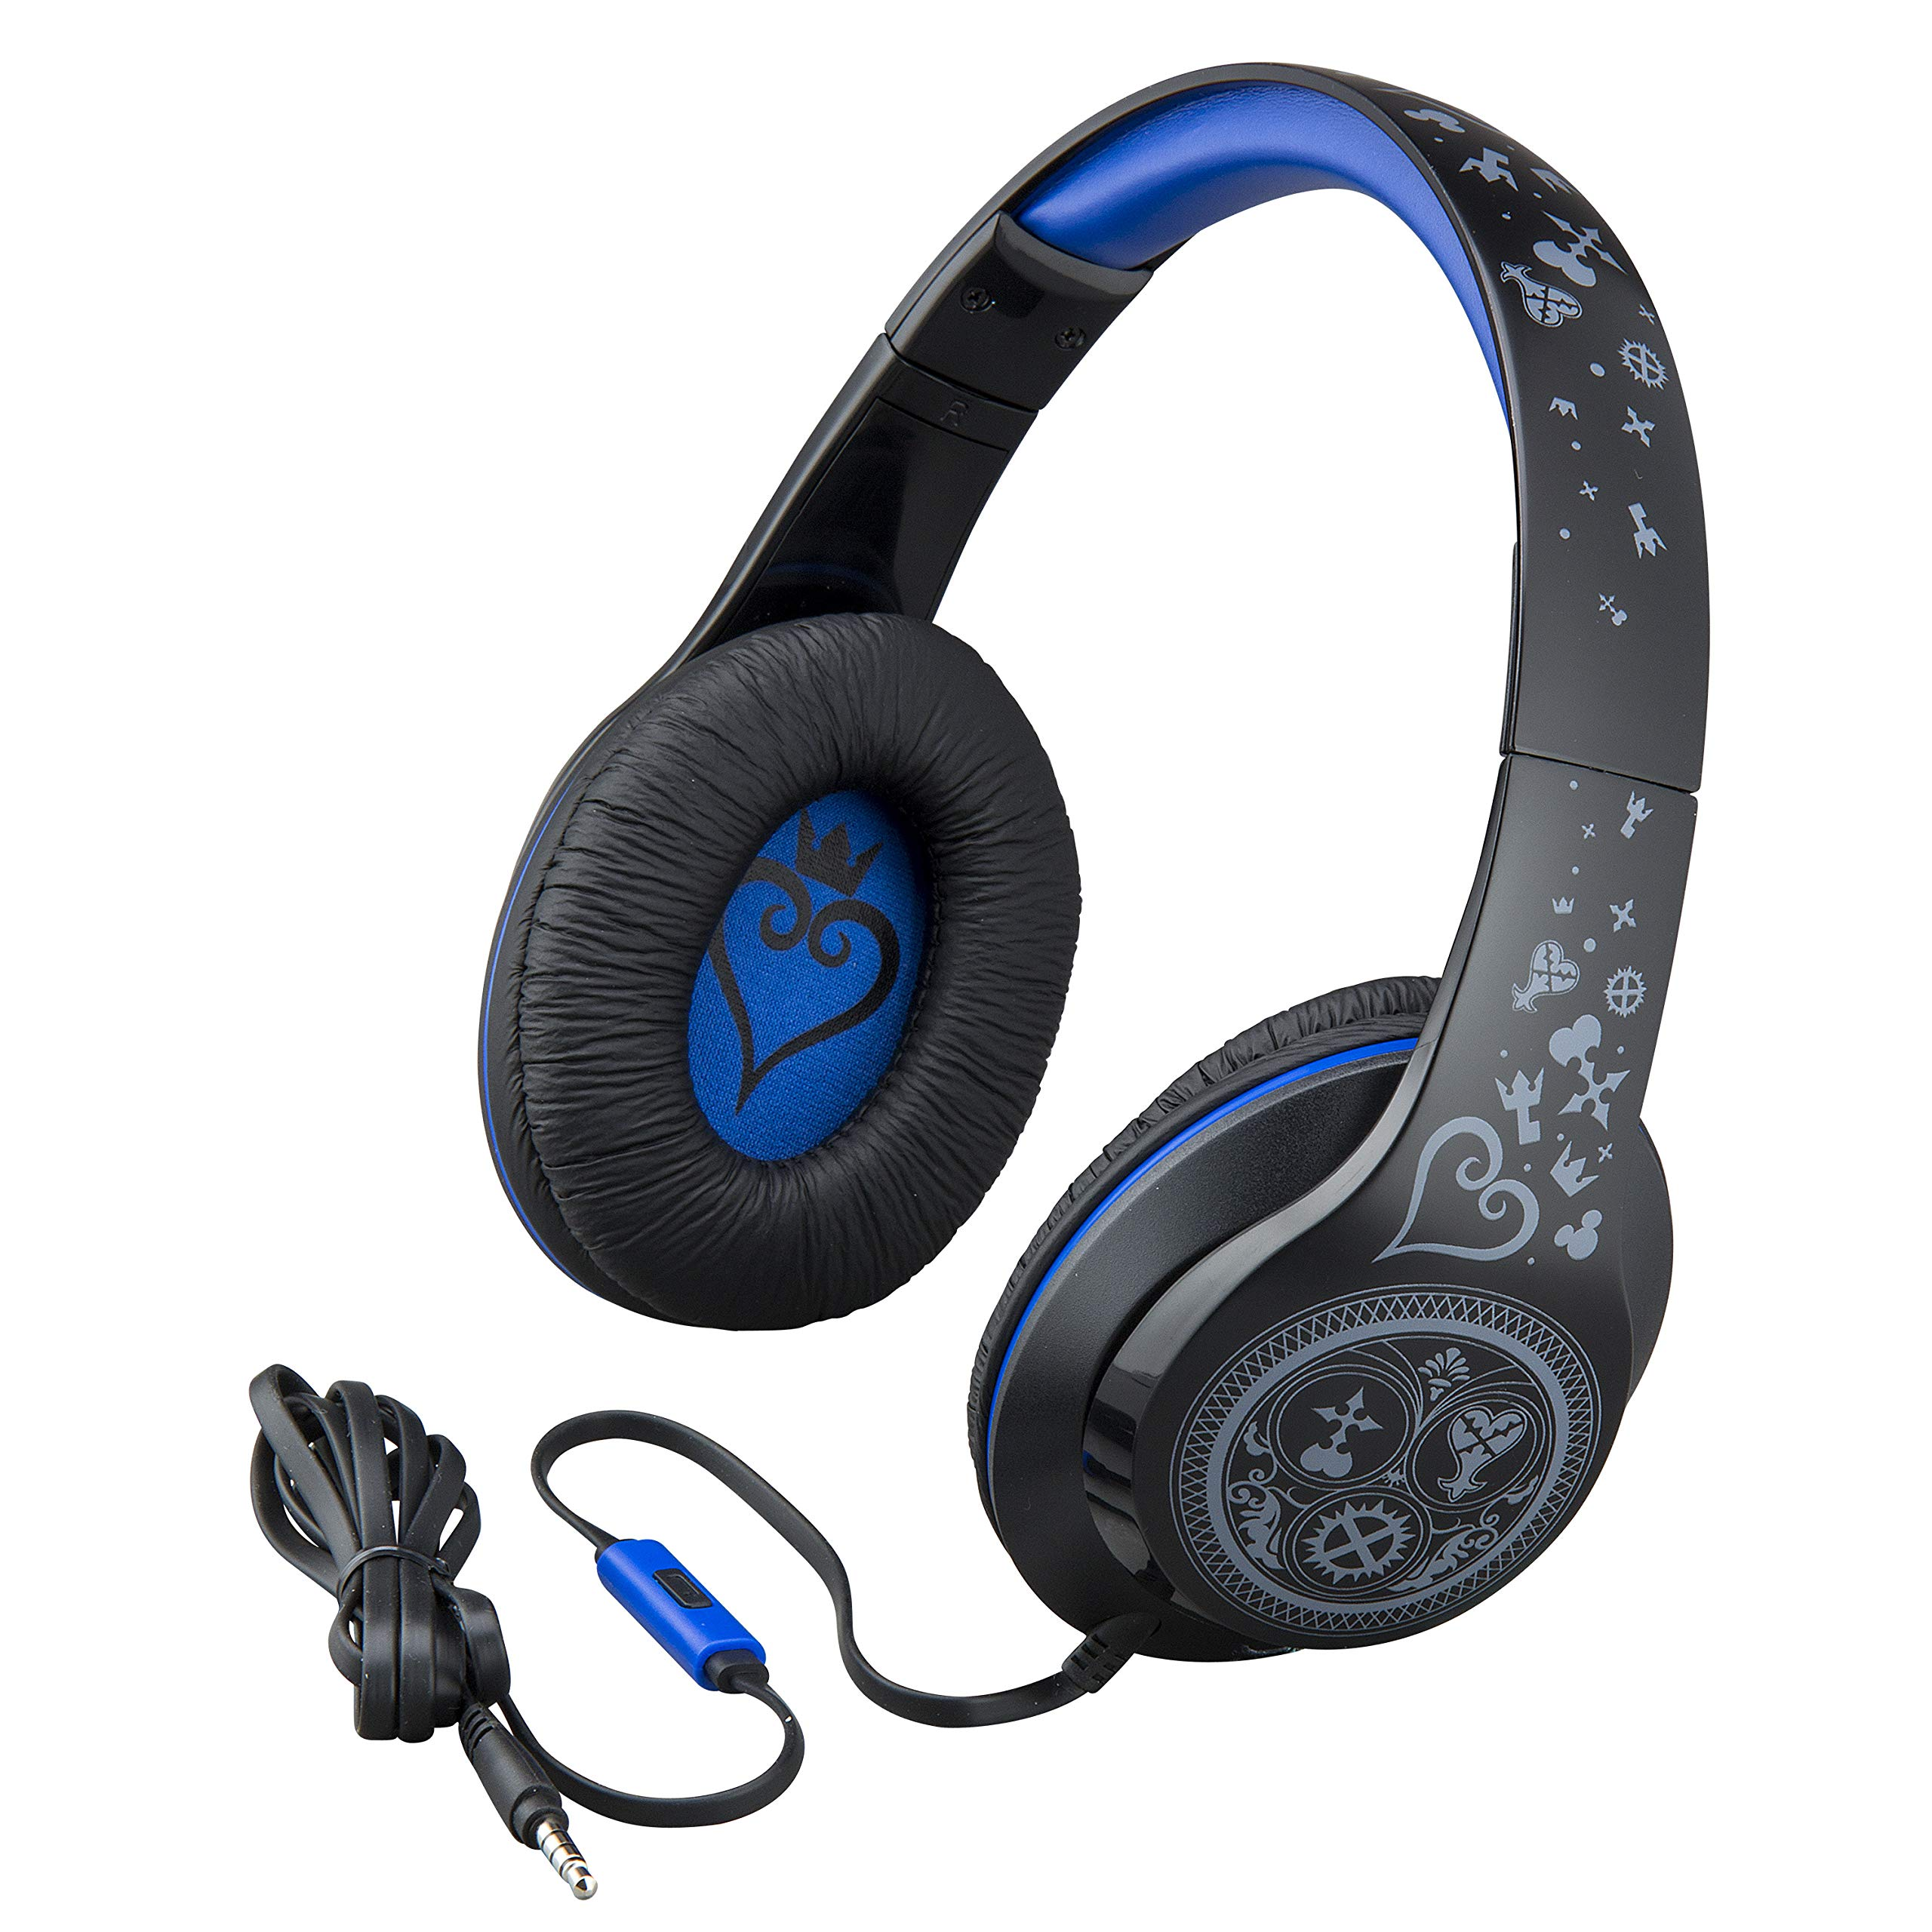 Kingdom Hearts Over The Ear Headphones with Built in Microphone Quality Sound from The Makers of iHome by eKids